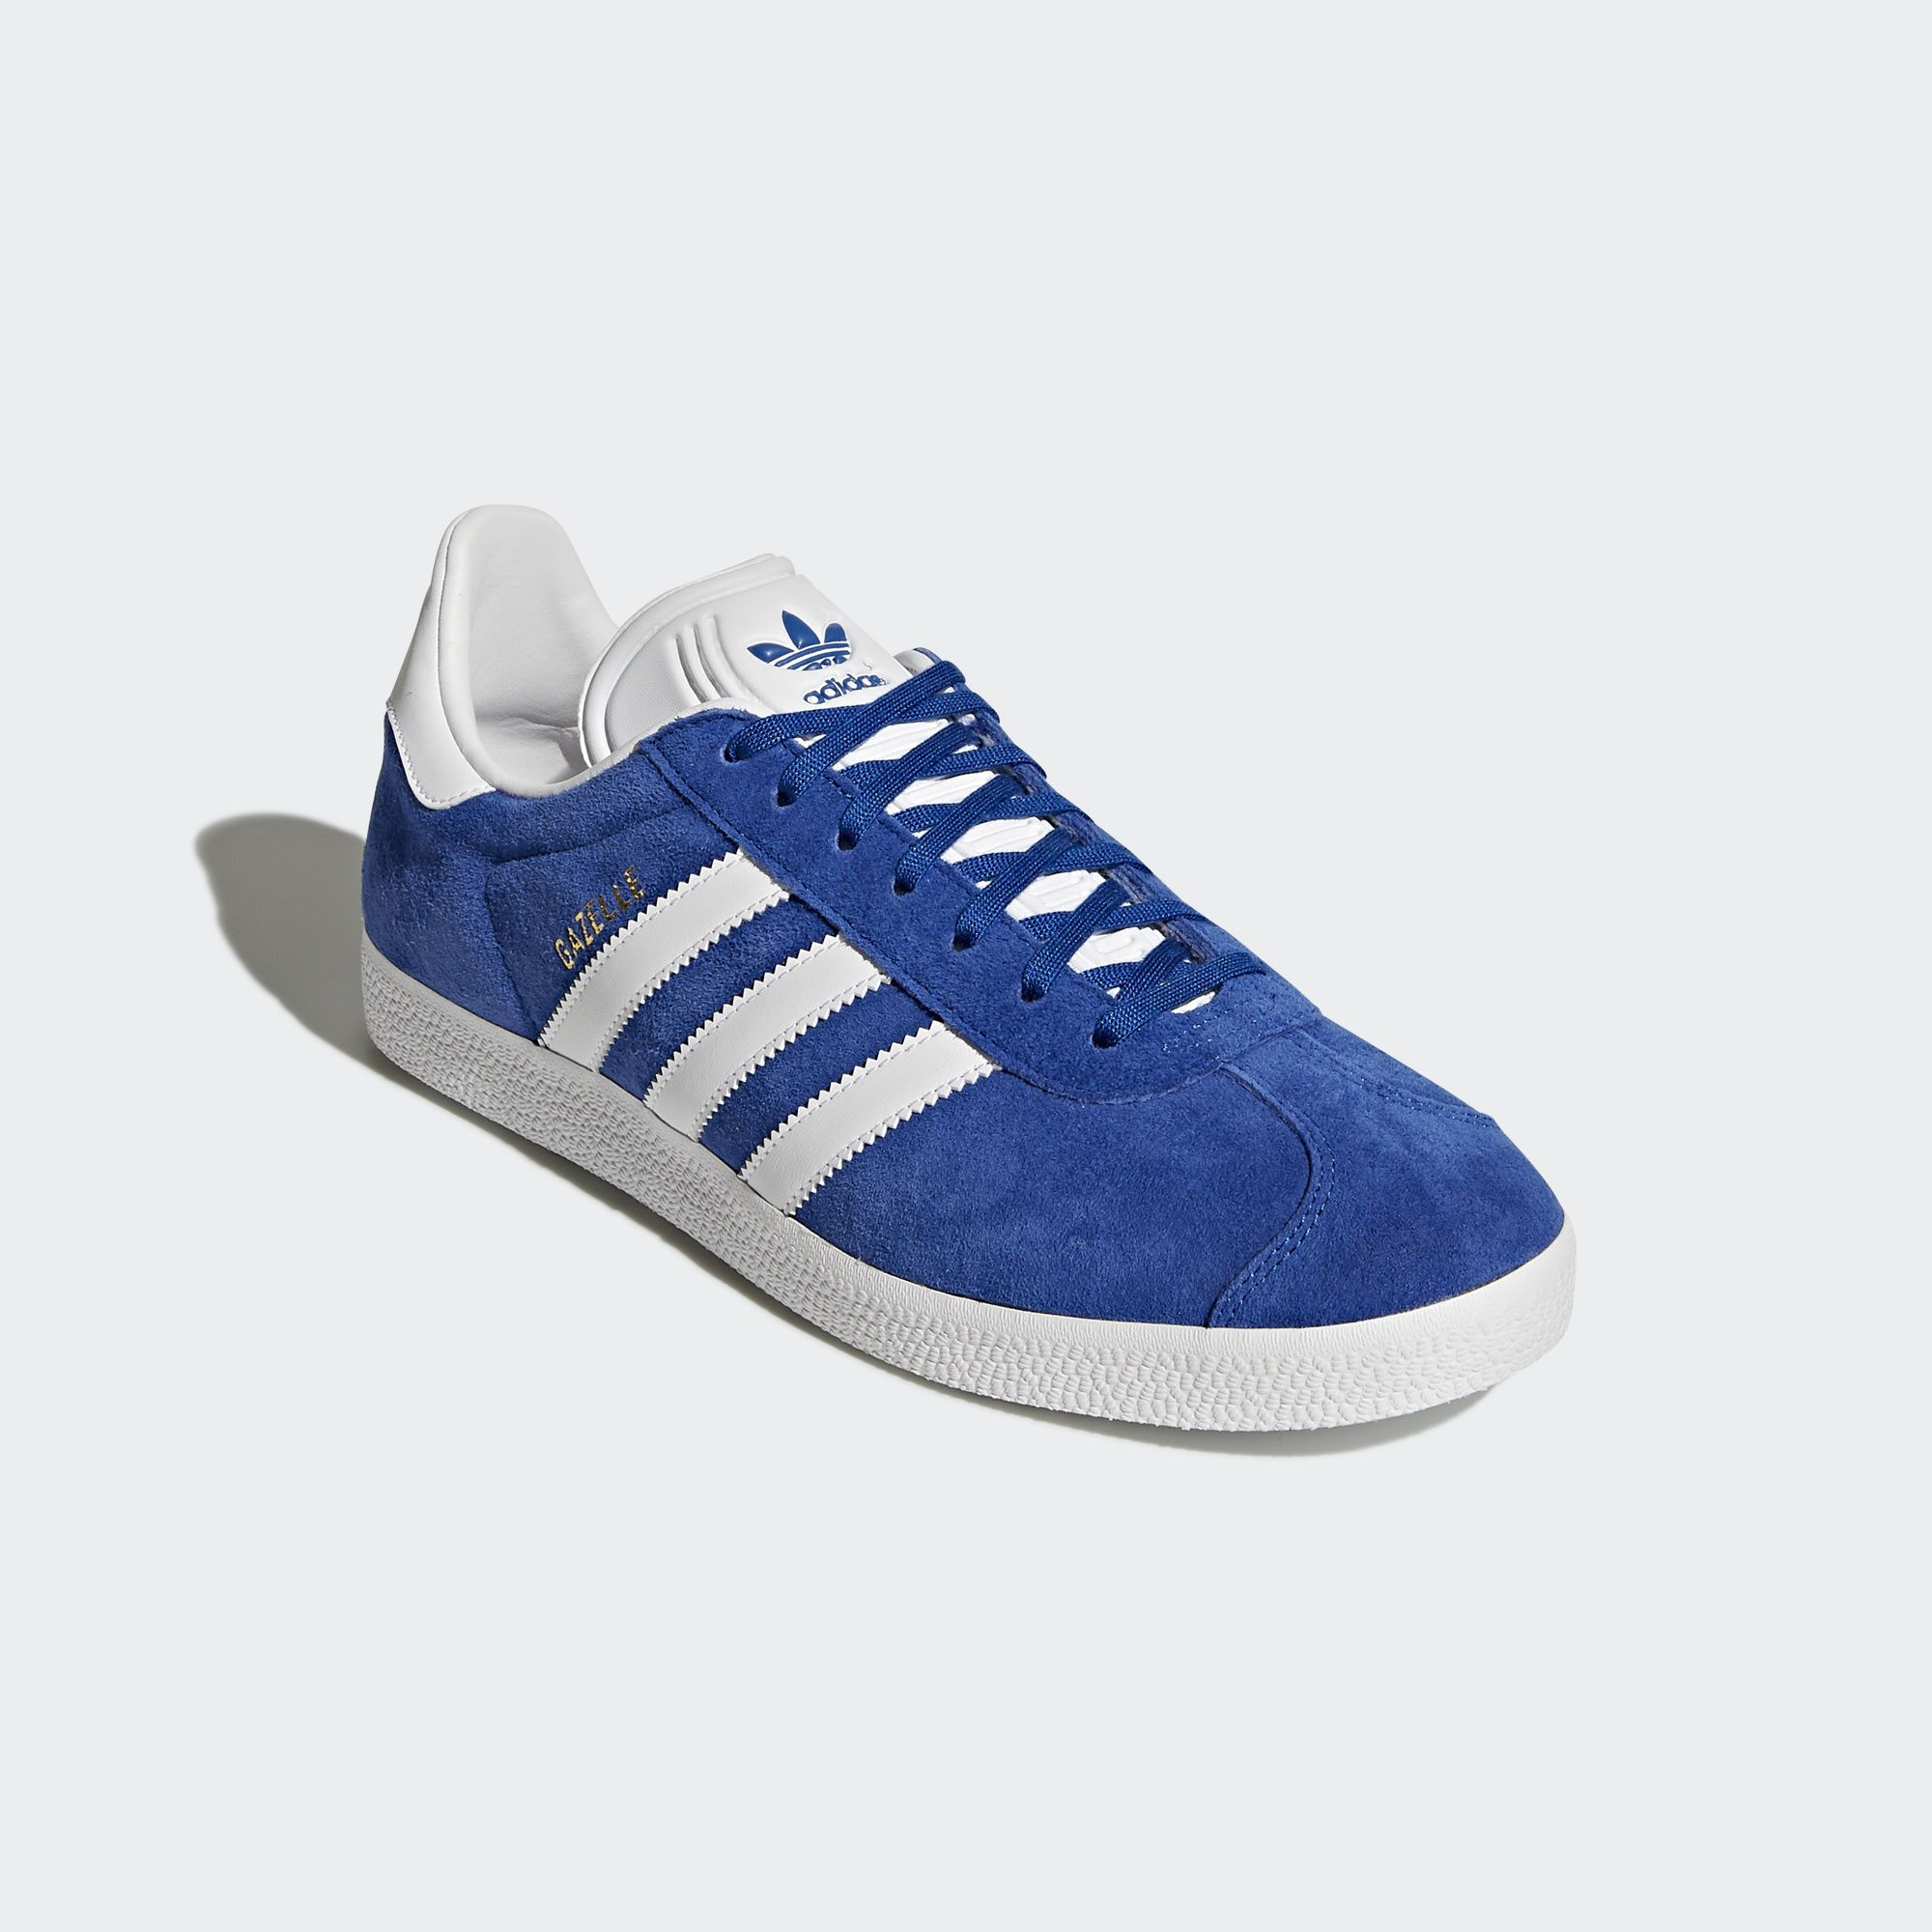 b21c73252f Gazelle Shoes | Fashion | Blue adidas, Adidas gazelle, Shoes